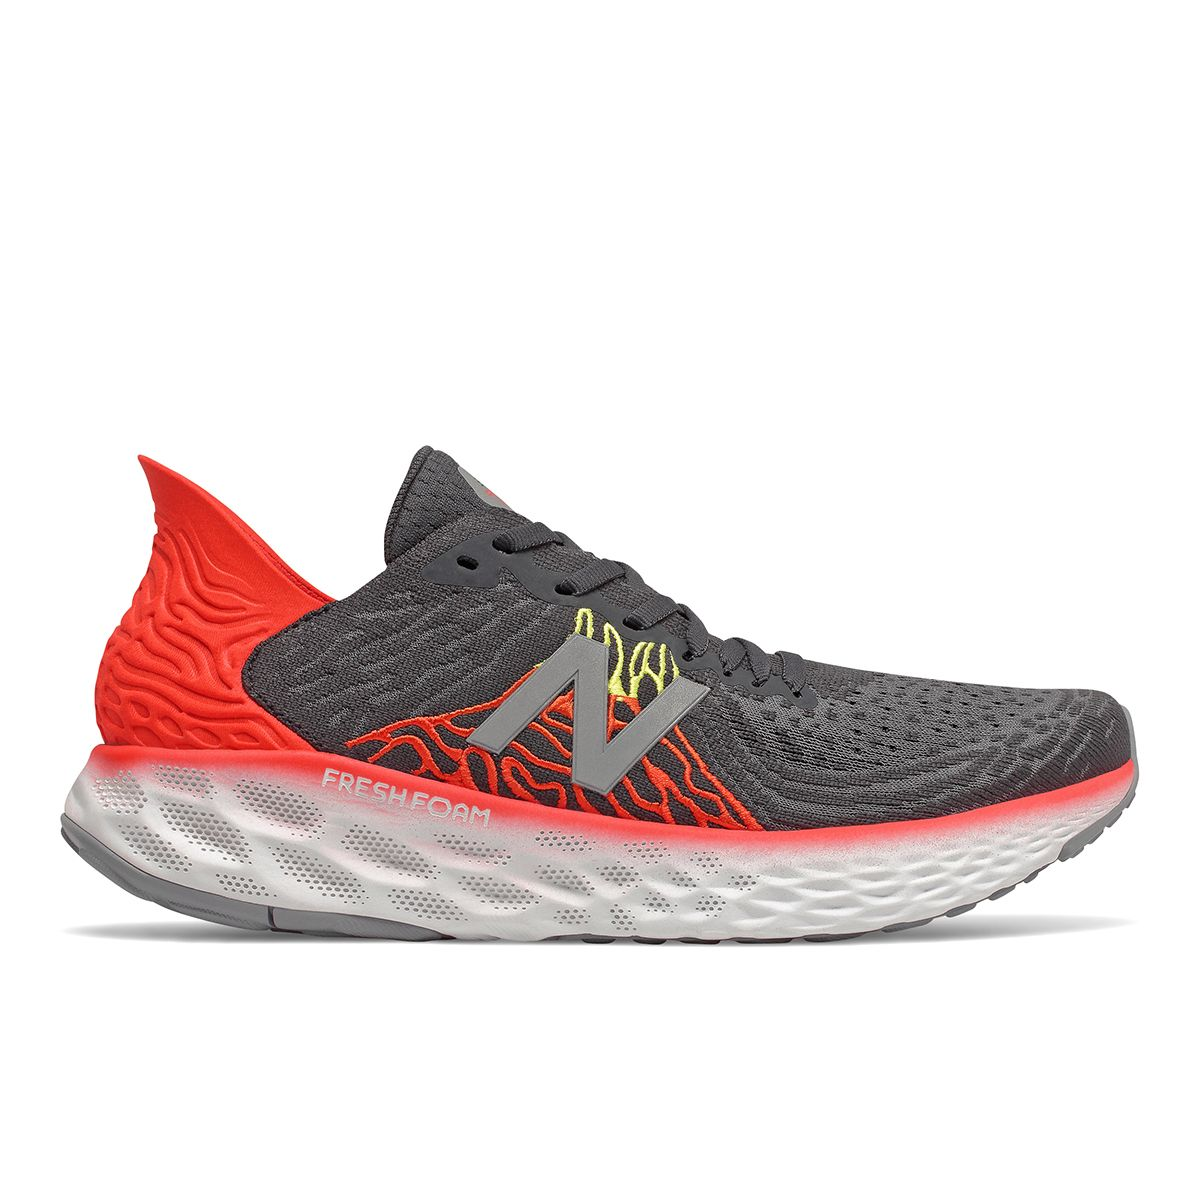 Best road running shoes of 2020